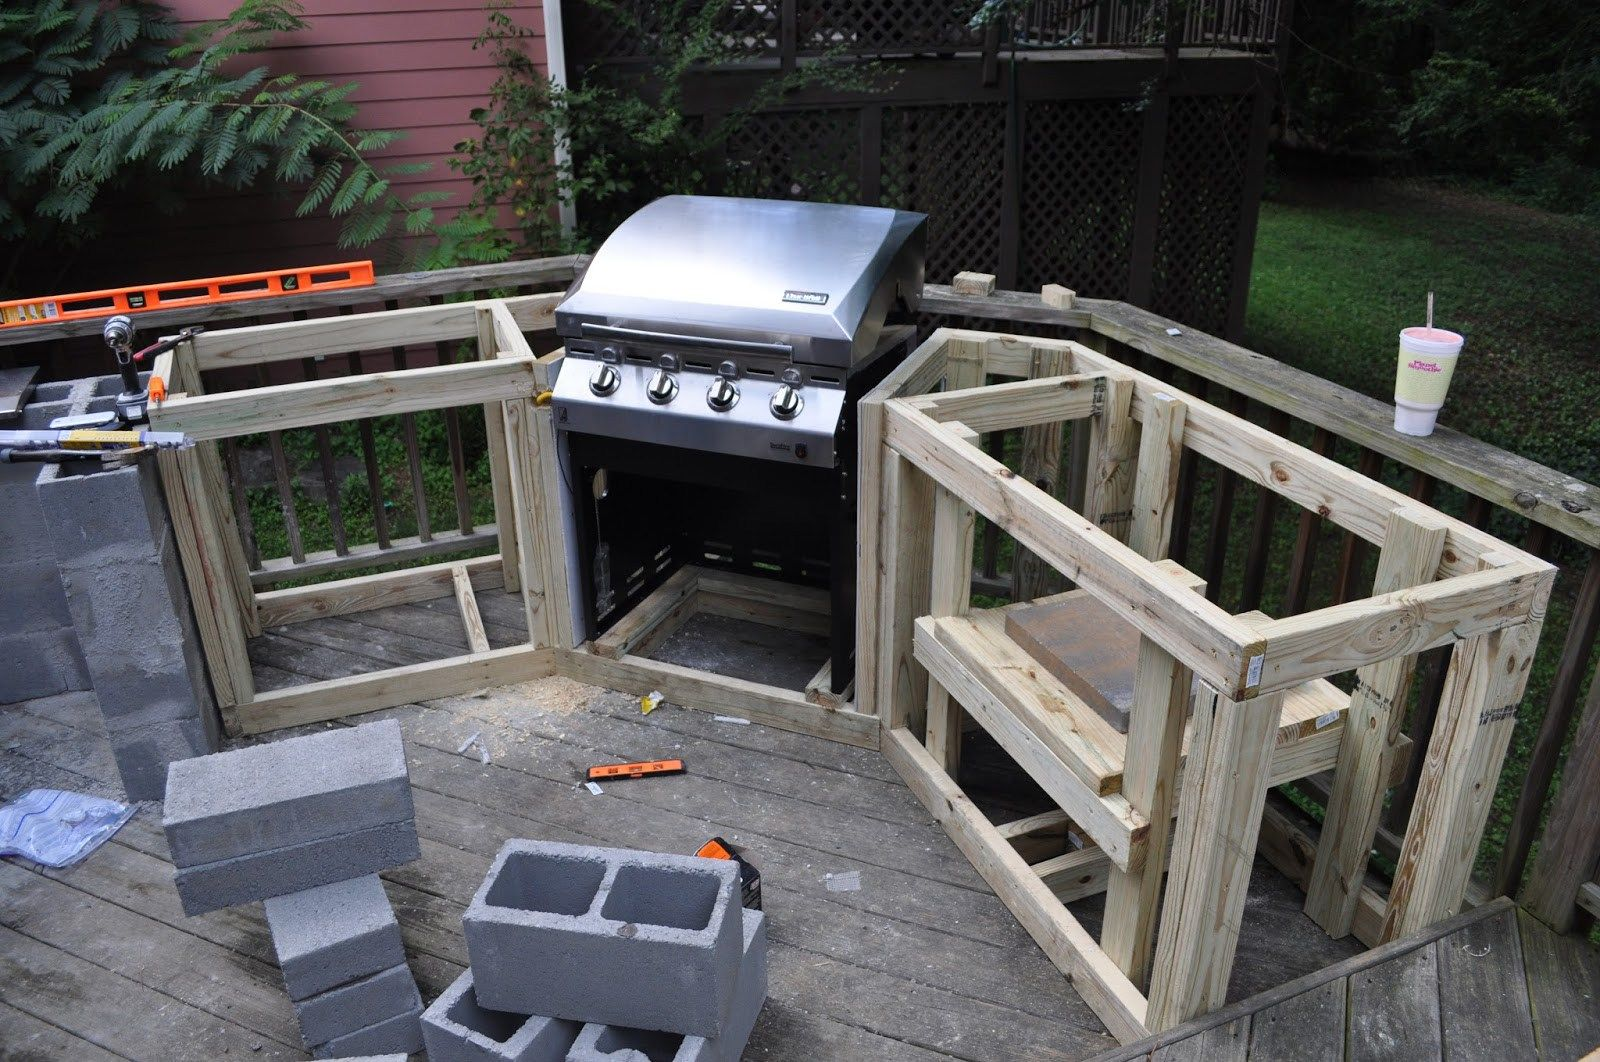 Charmant How To Build An Outdoor Kitchen With Wood Frame With How To Build An Outdoor  Kitchen Simple Tips On How To Build An Outdoor Kitchen, 16 Examples Of  Barbecue ...